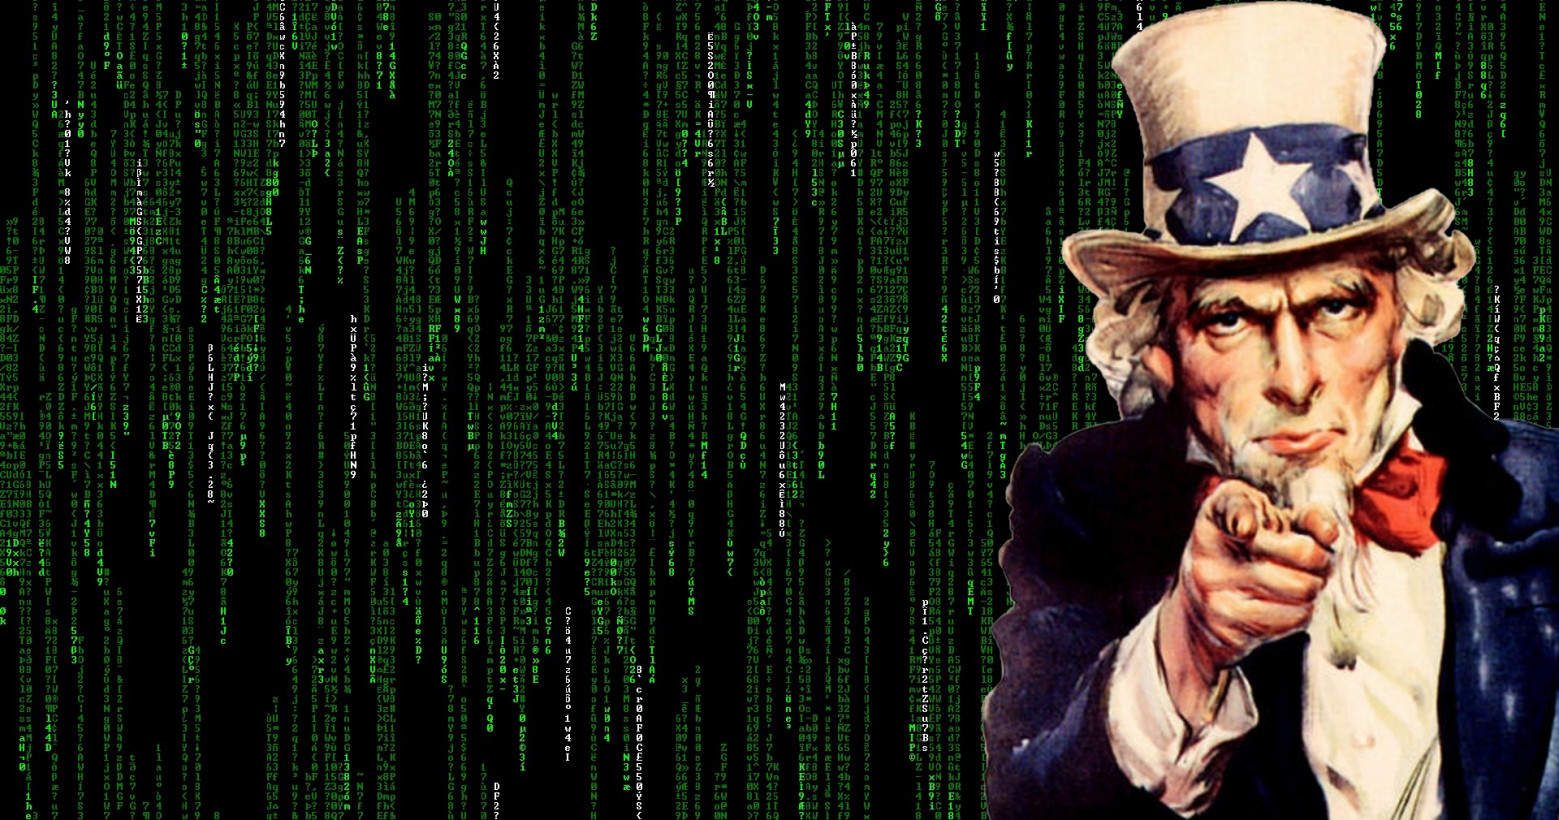 The US military could begin drafting 40-year-old hackers